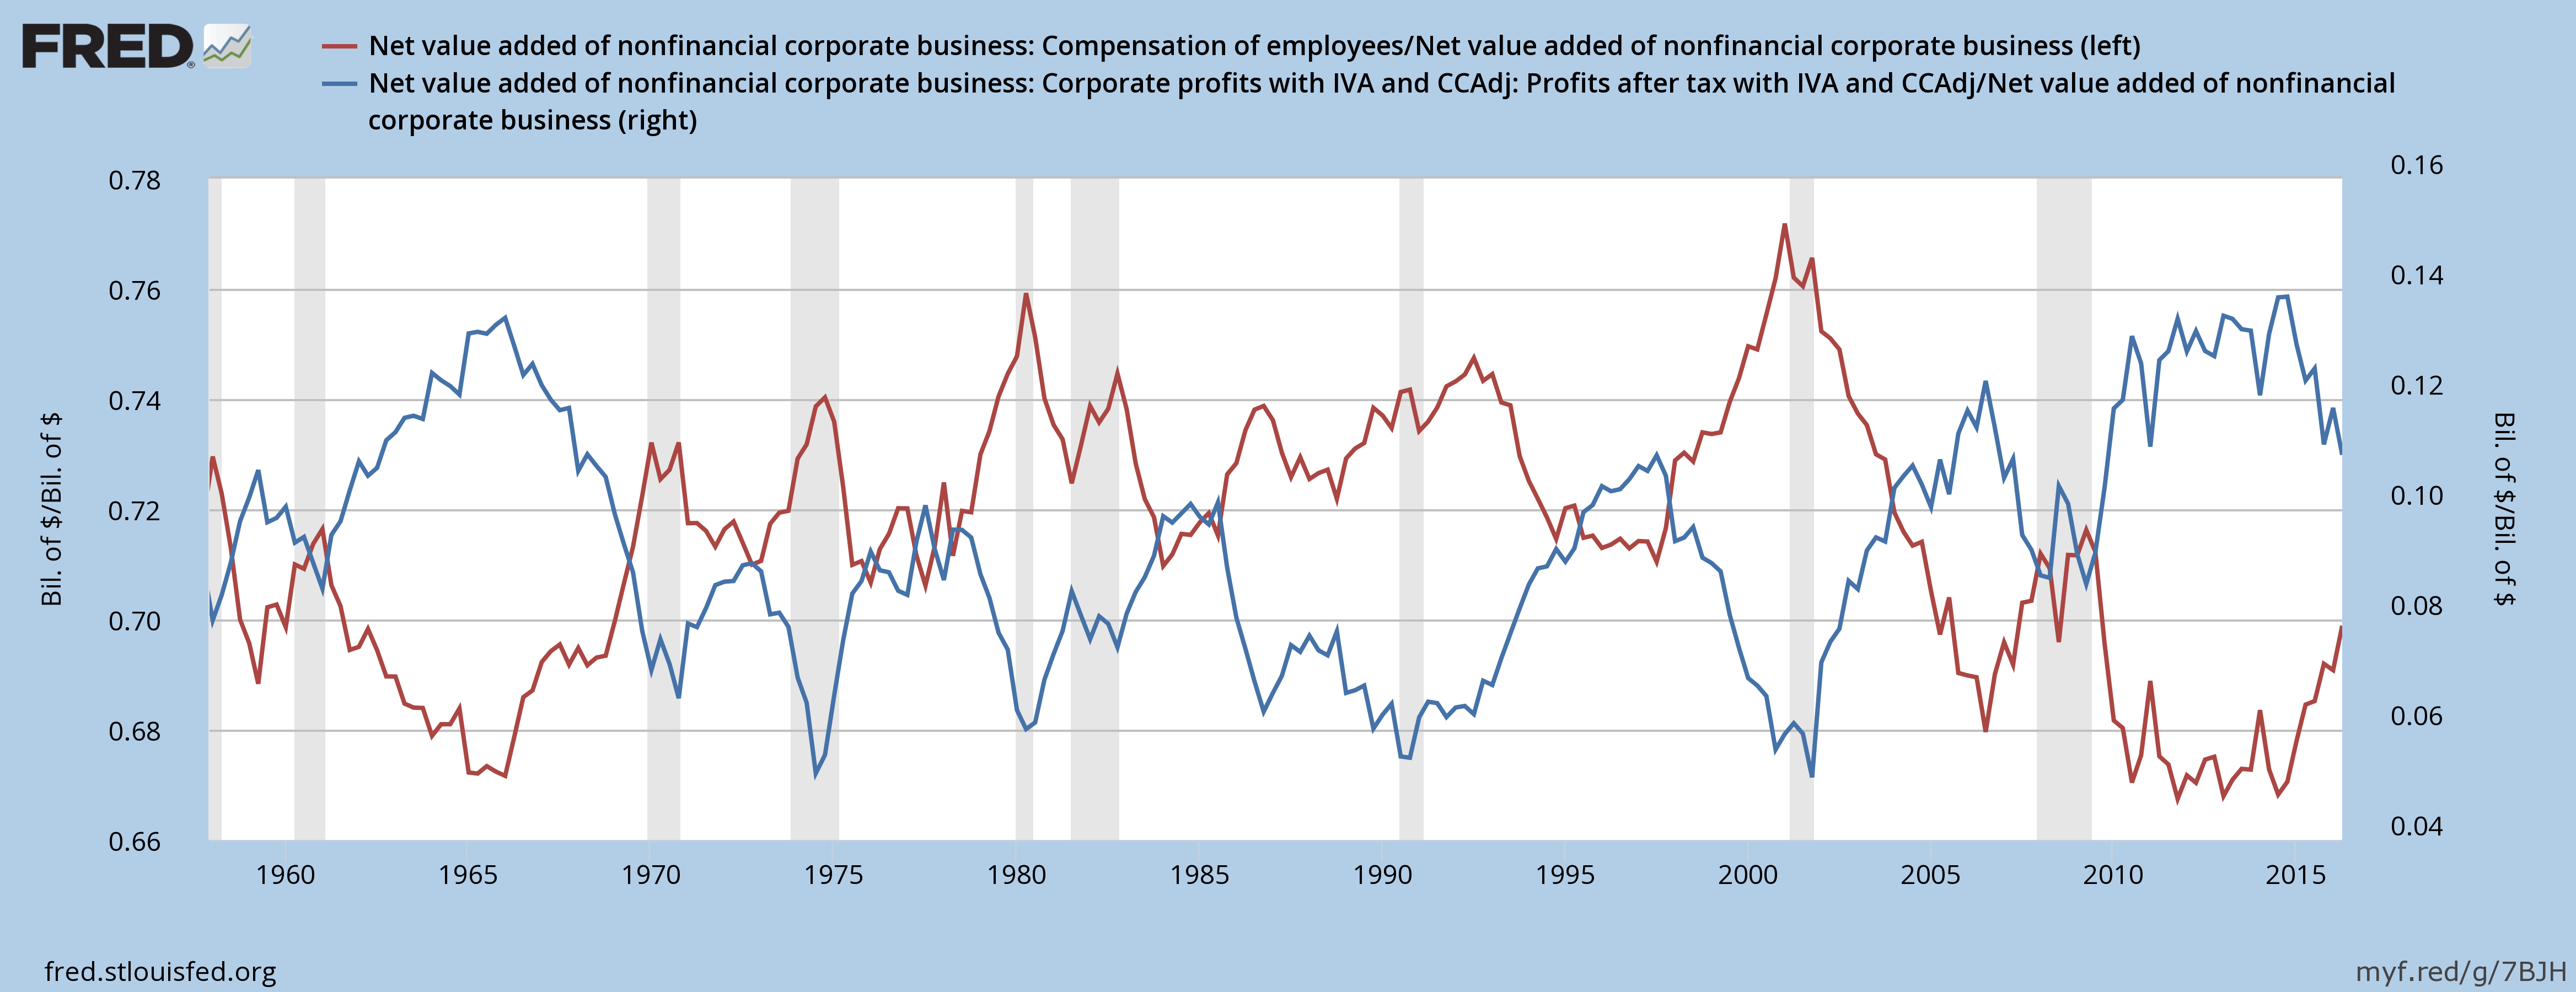 A FRED chart of labor costs (red) versus corporate profits (blue). A clear pattern emerges from the chart. Profits rise after a recession as labor costs fall. When the labor market reaches capacity, profits fall as labor costs rise. When labor costs rise, the Federal Reserve raises interest rates to tame inflation which causes the next recession.